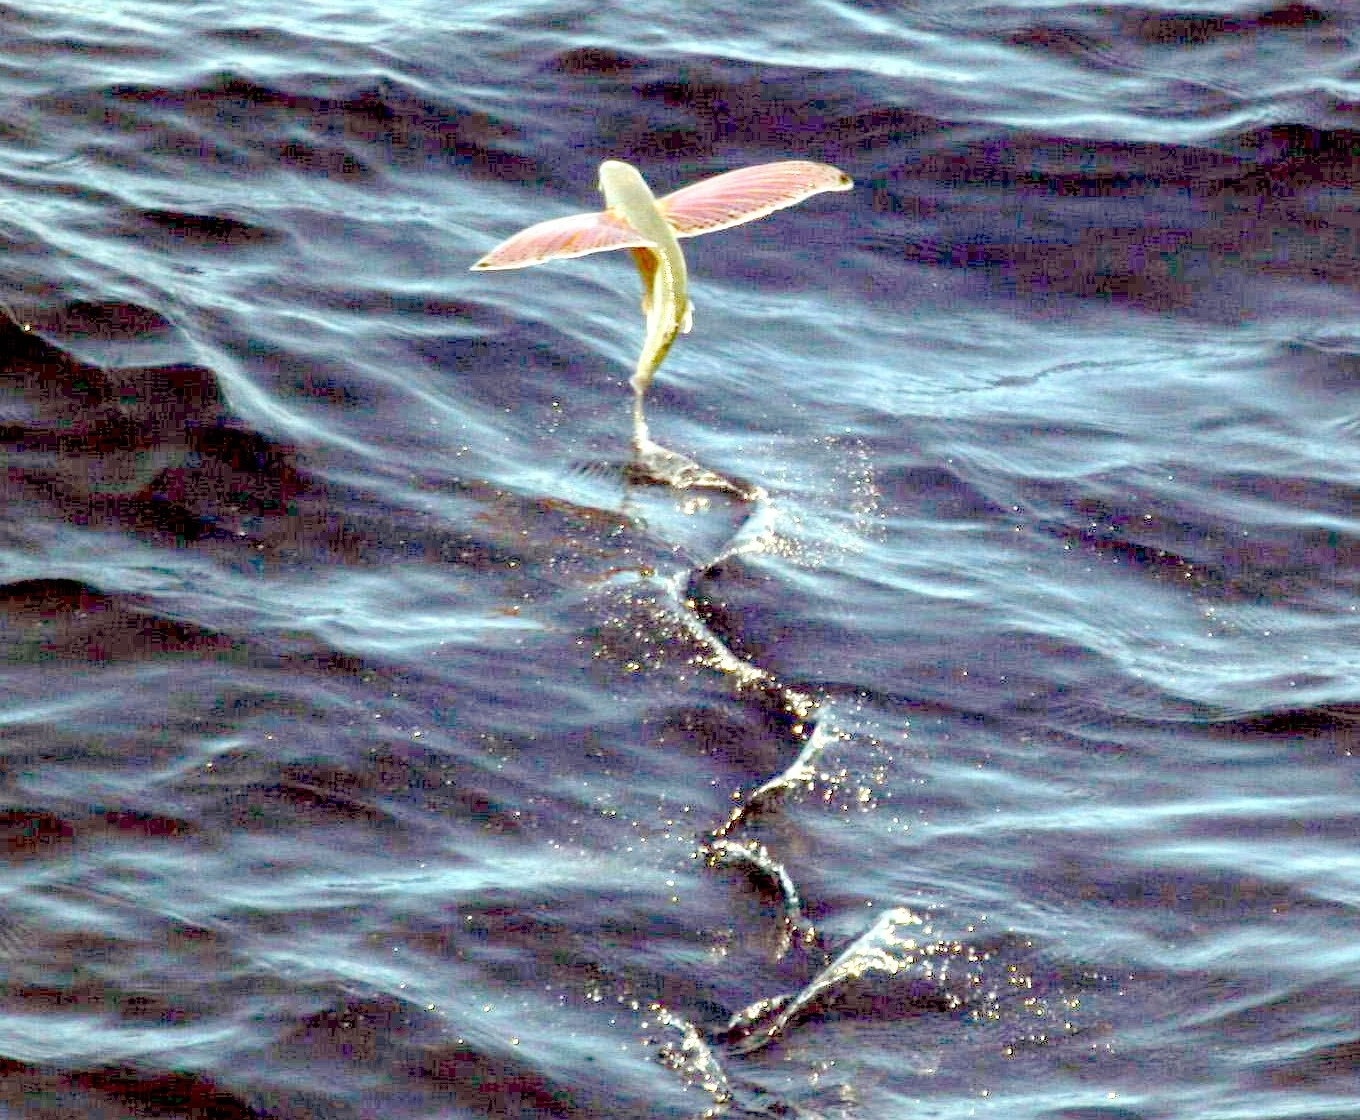 So, how long can a flying fish fly for?